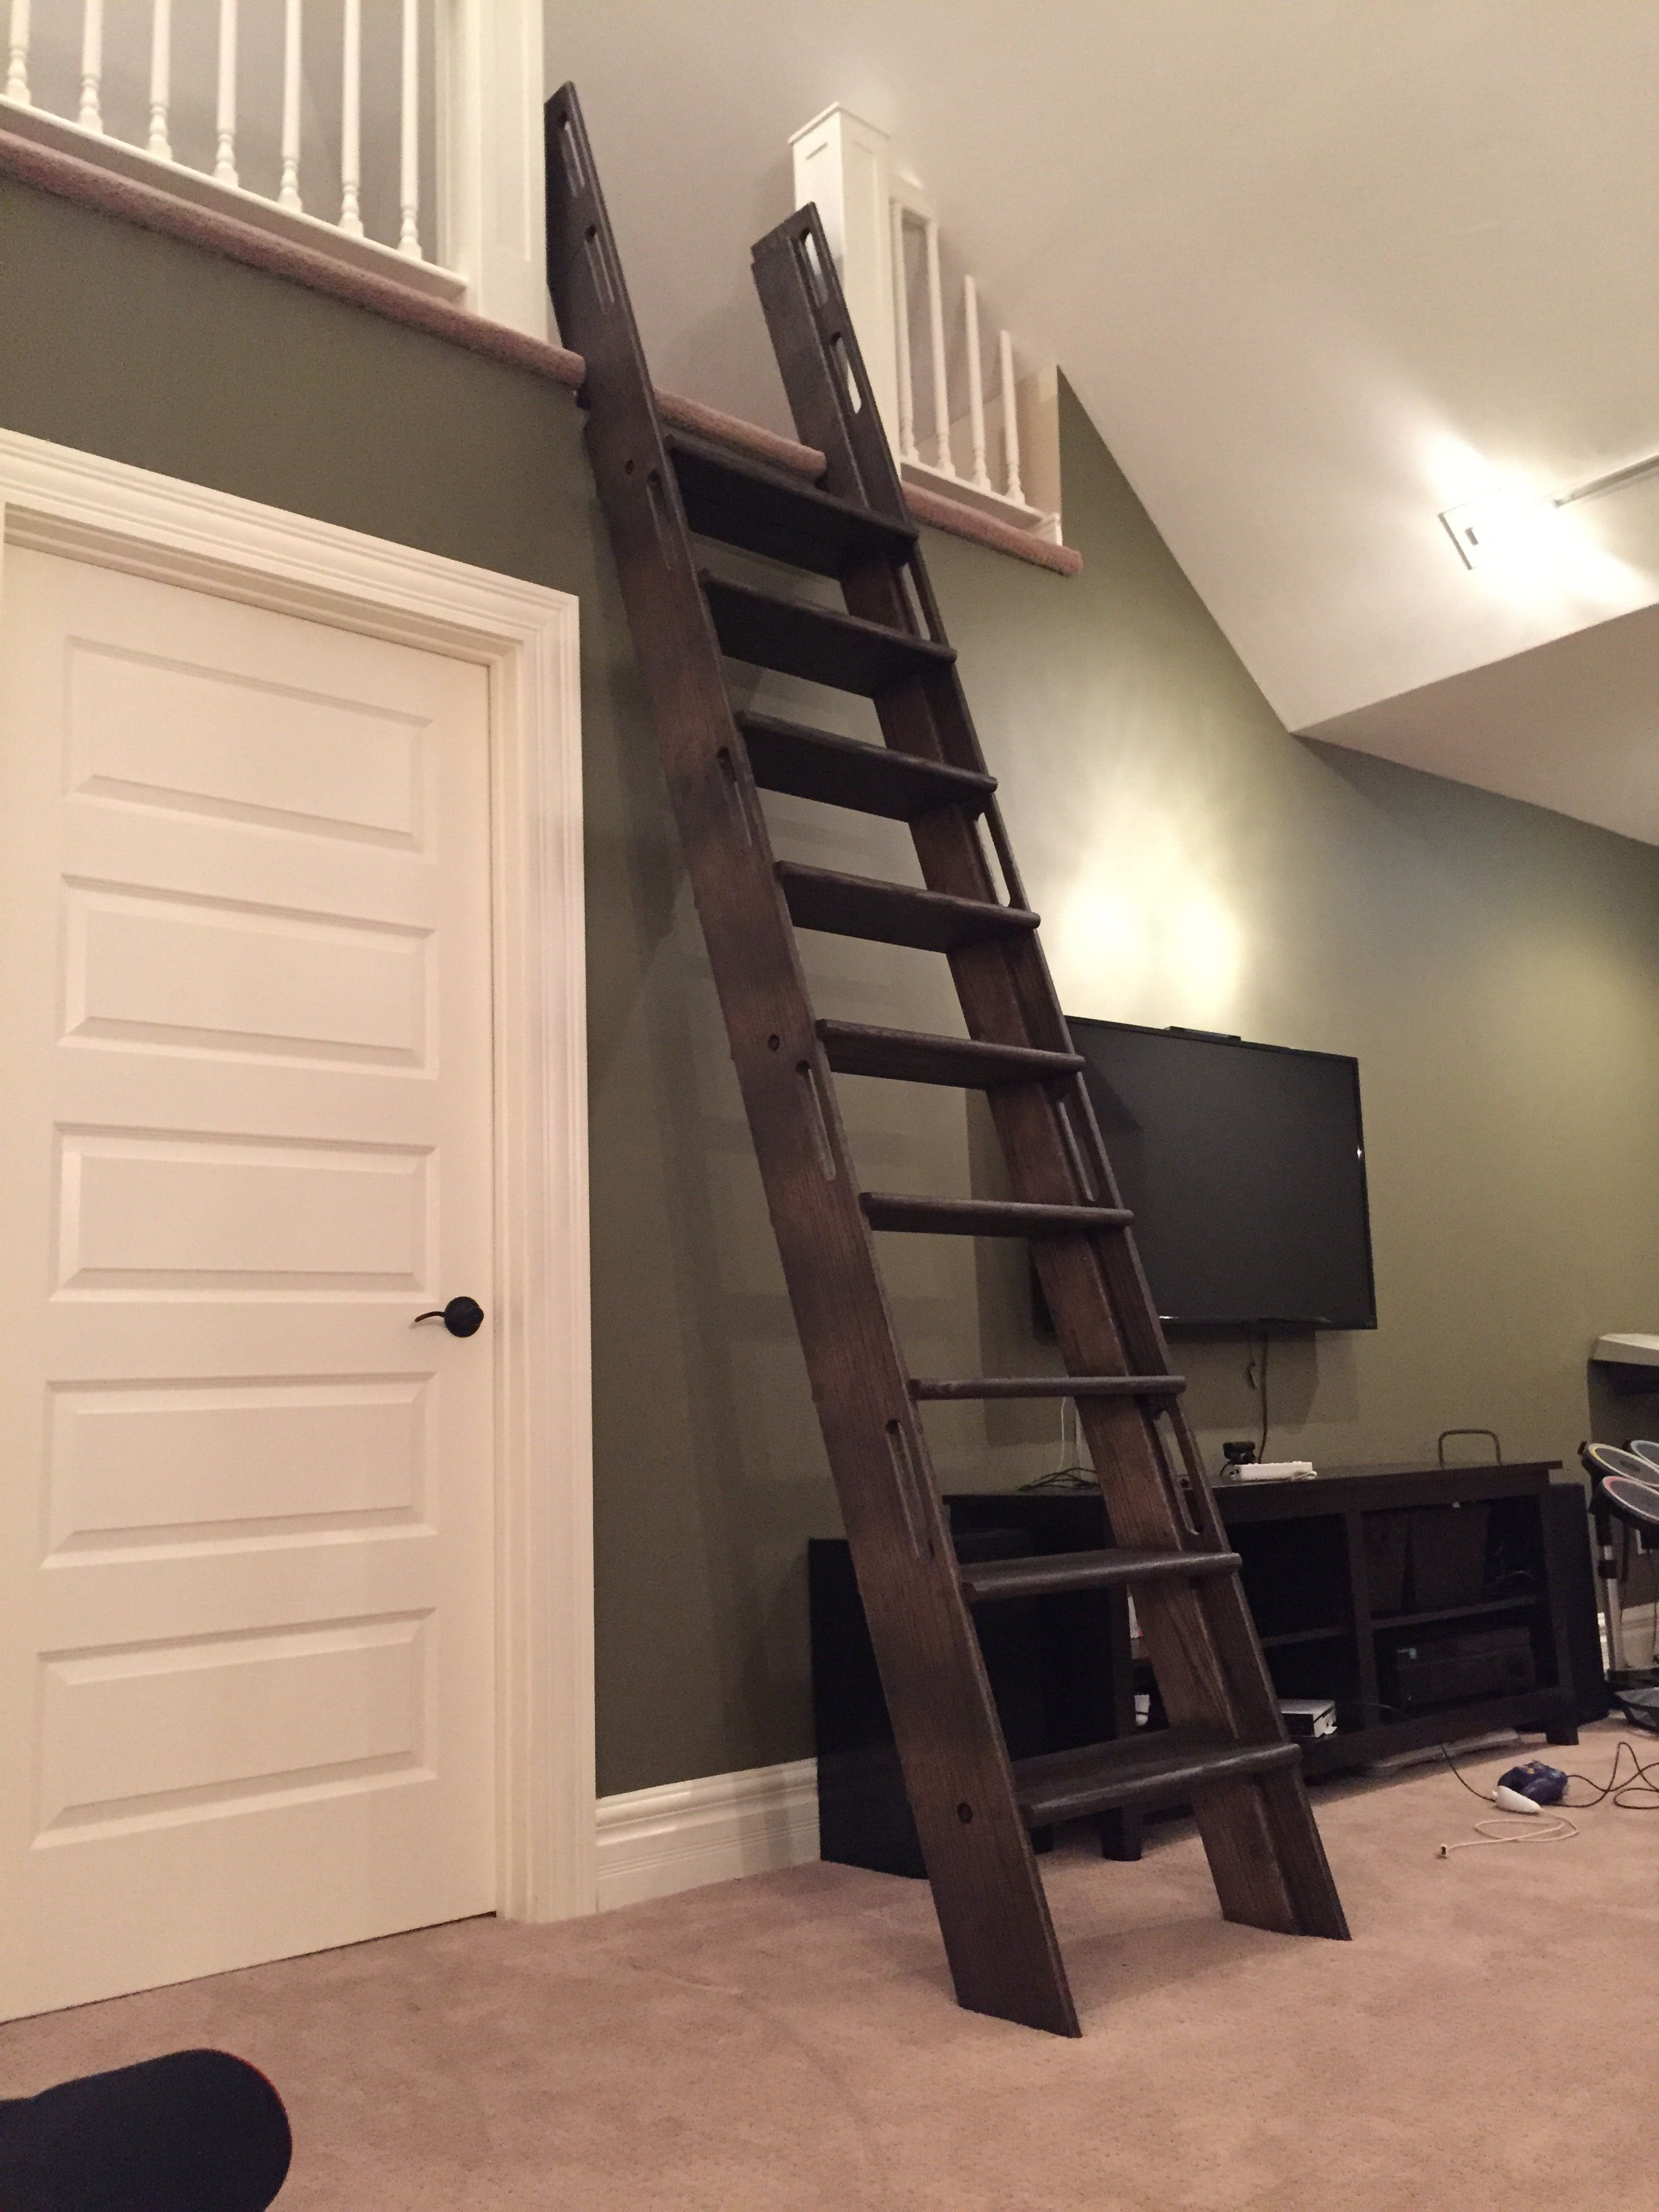 Loft Ladder Loft Ladders Pinterest Loft Ladders And